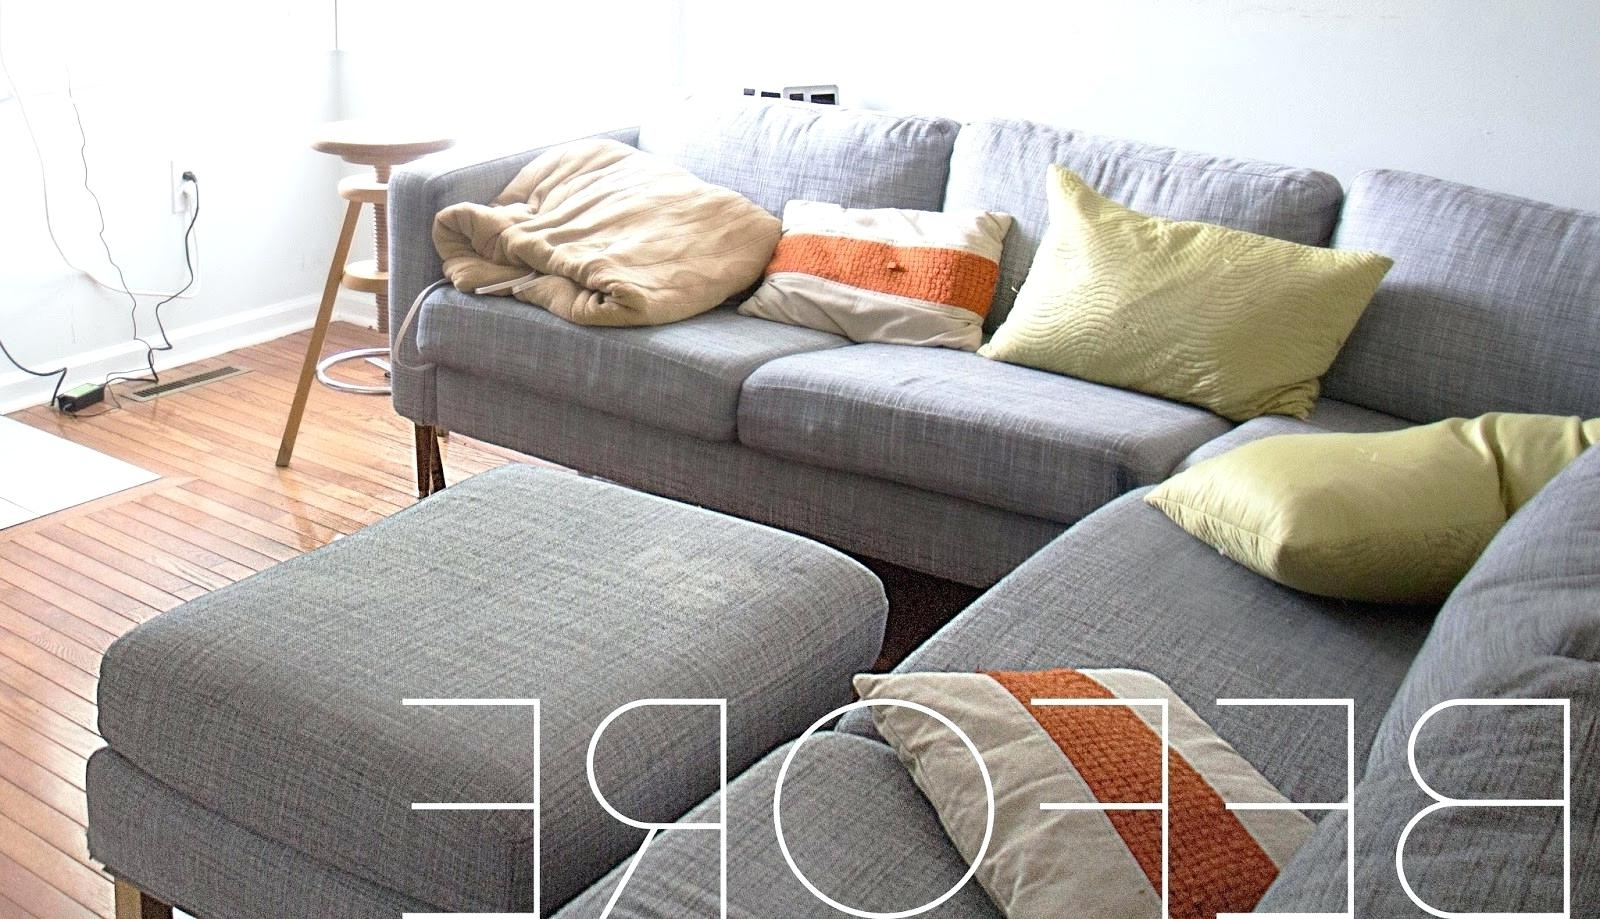 Sectional Sofas Covers S Sofa For Dogs Canada Sale Pertaining To Current Canada Sale Sectional Sofas (View 12 of 20)